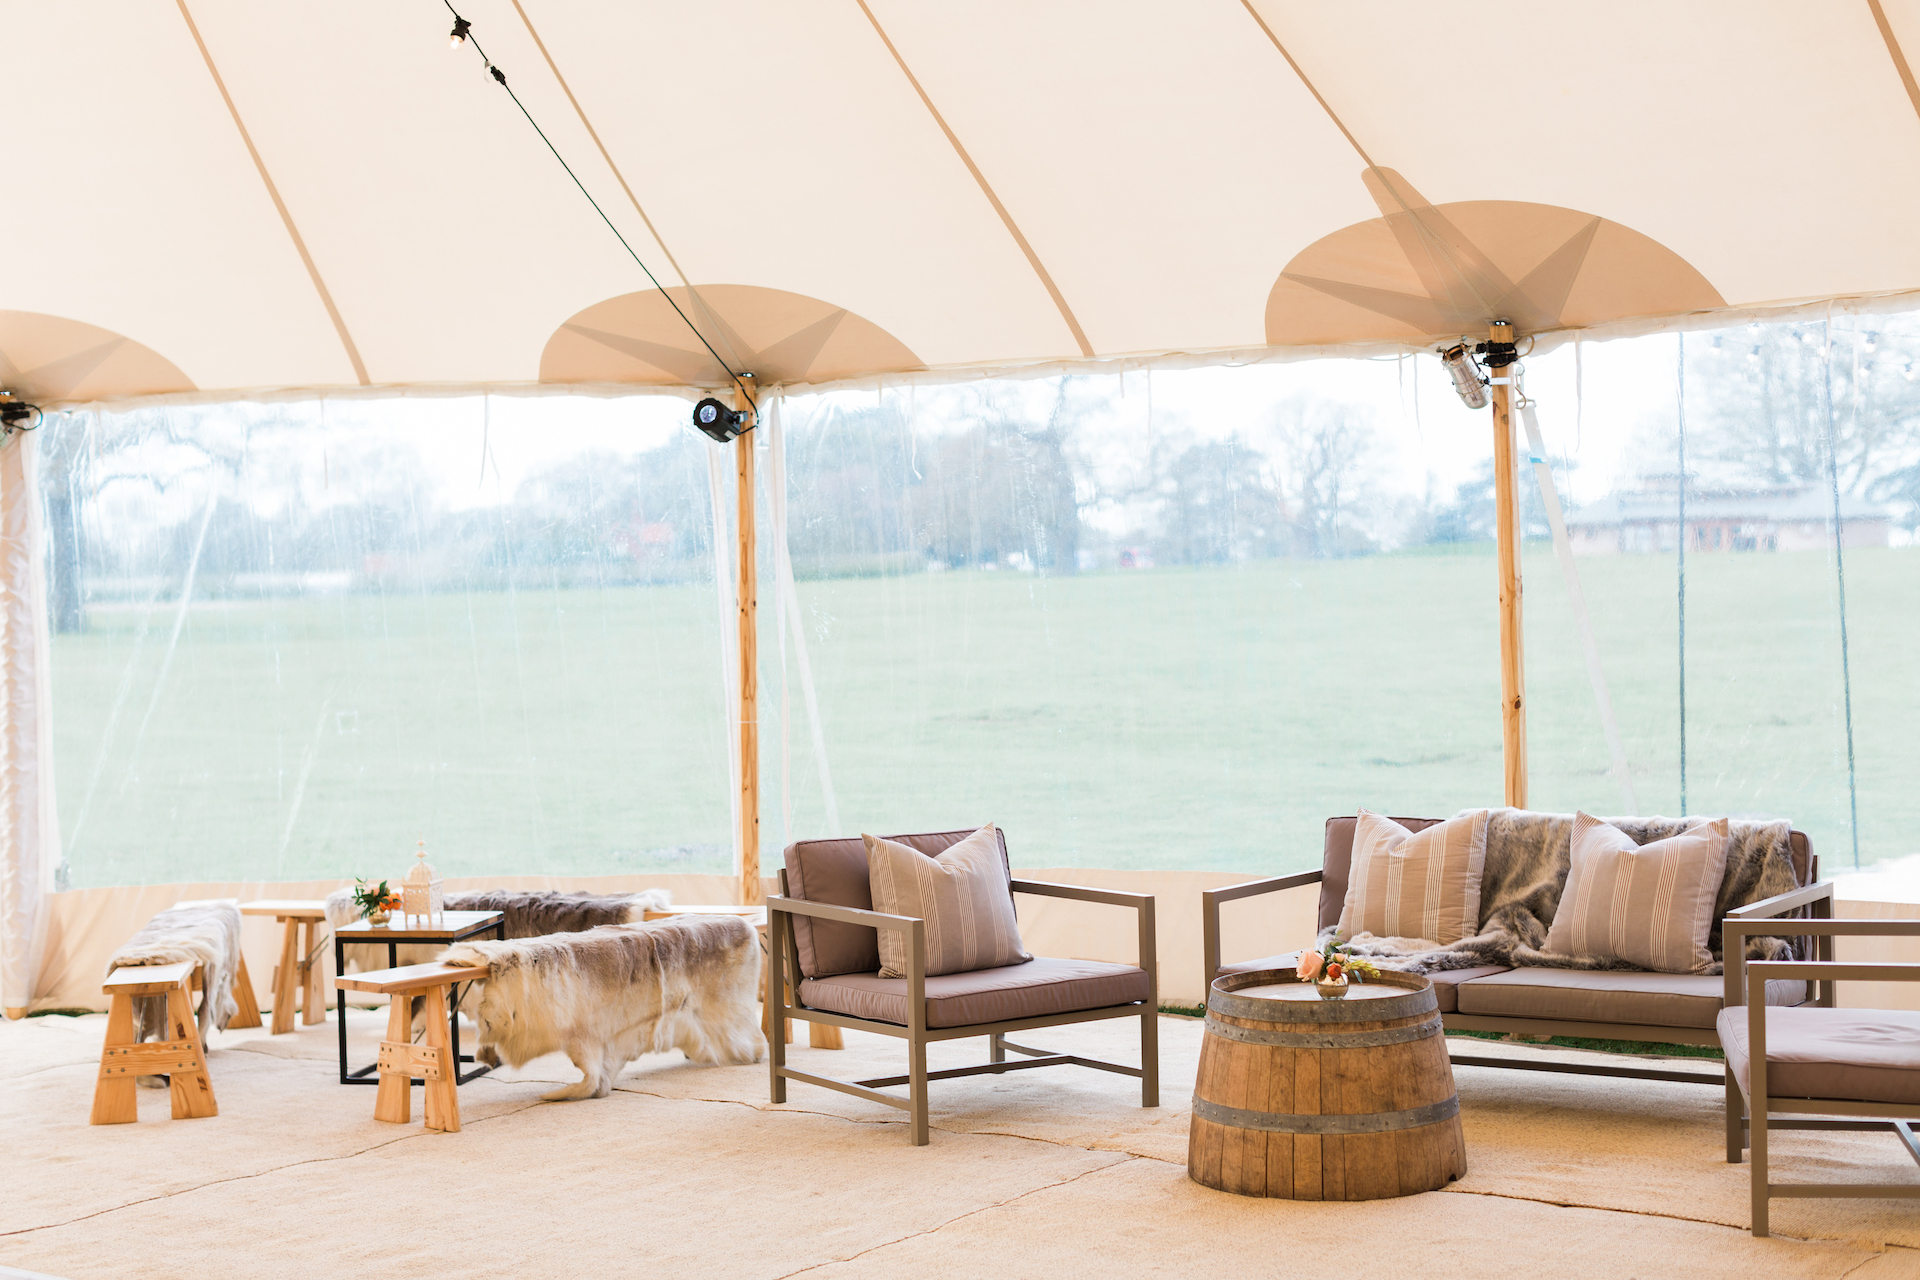 PapaKåta Spring Open Weekend Sperry Tent captured by Lucy Davenport Photography: Chill Out Snug & Hamptons Sofa Set